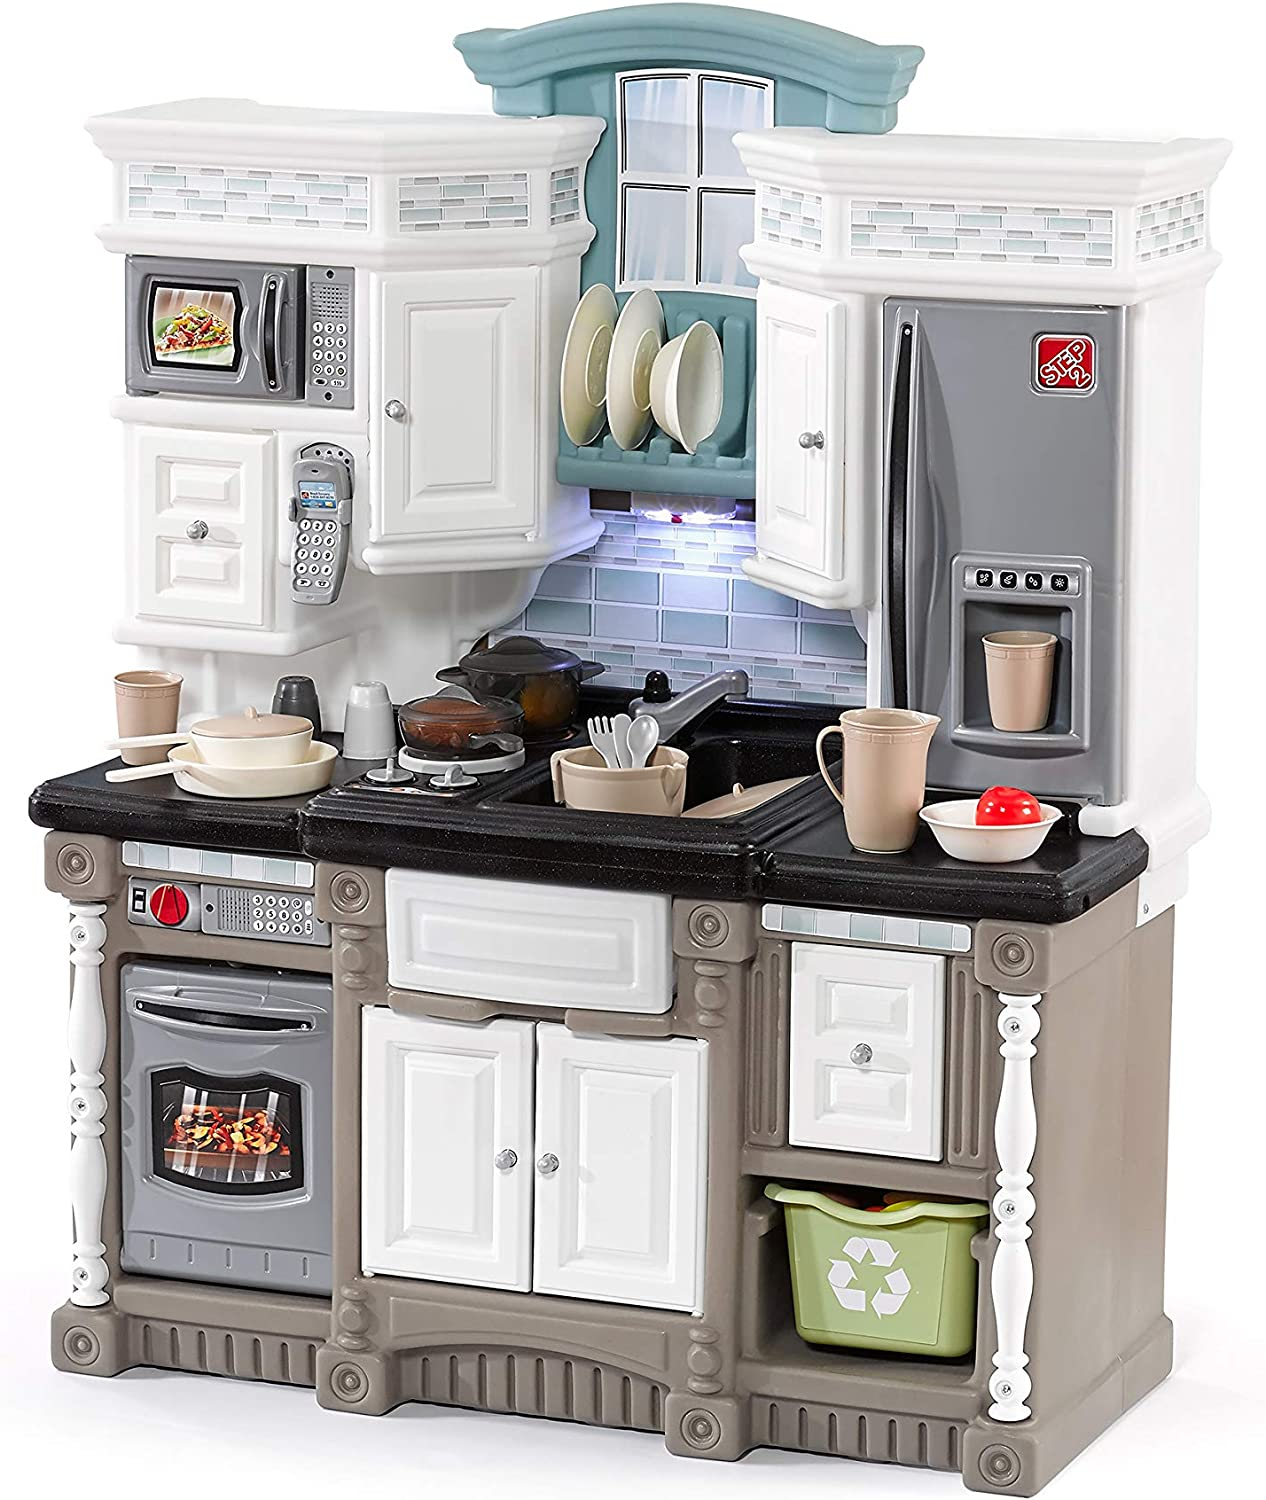 Step2 Lifestyle Dream Kitchen   Plastic Toy Play Kitchen with 37-Pc Accessories Set   Contemporary Kids Kitchen Playset: Toys & Games